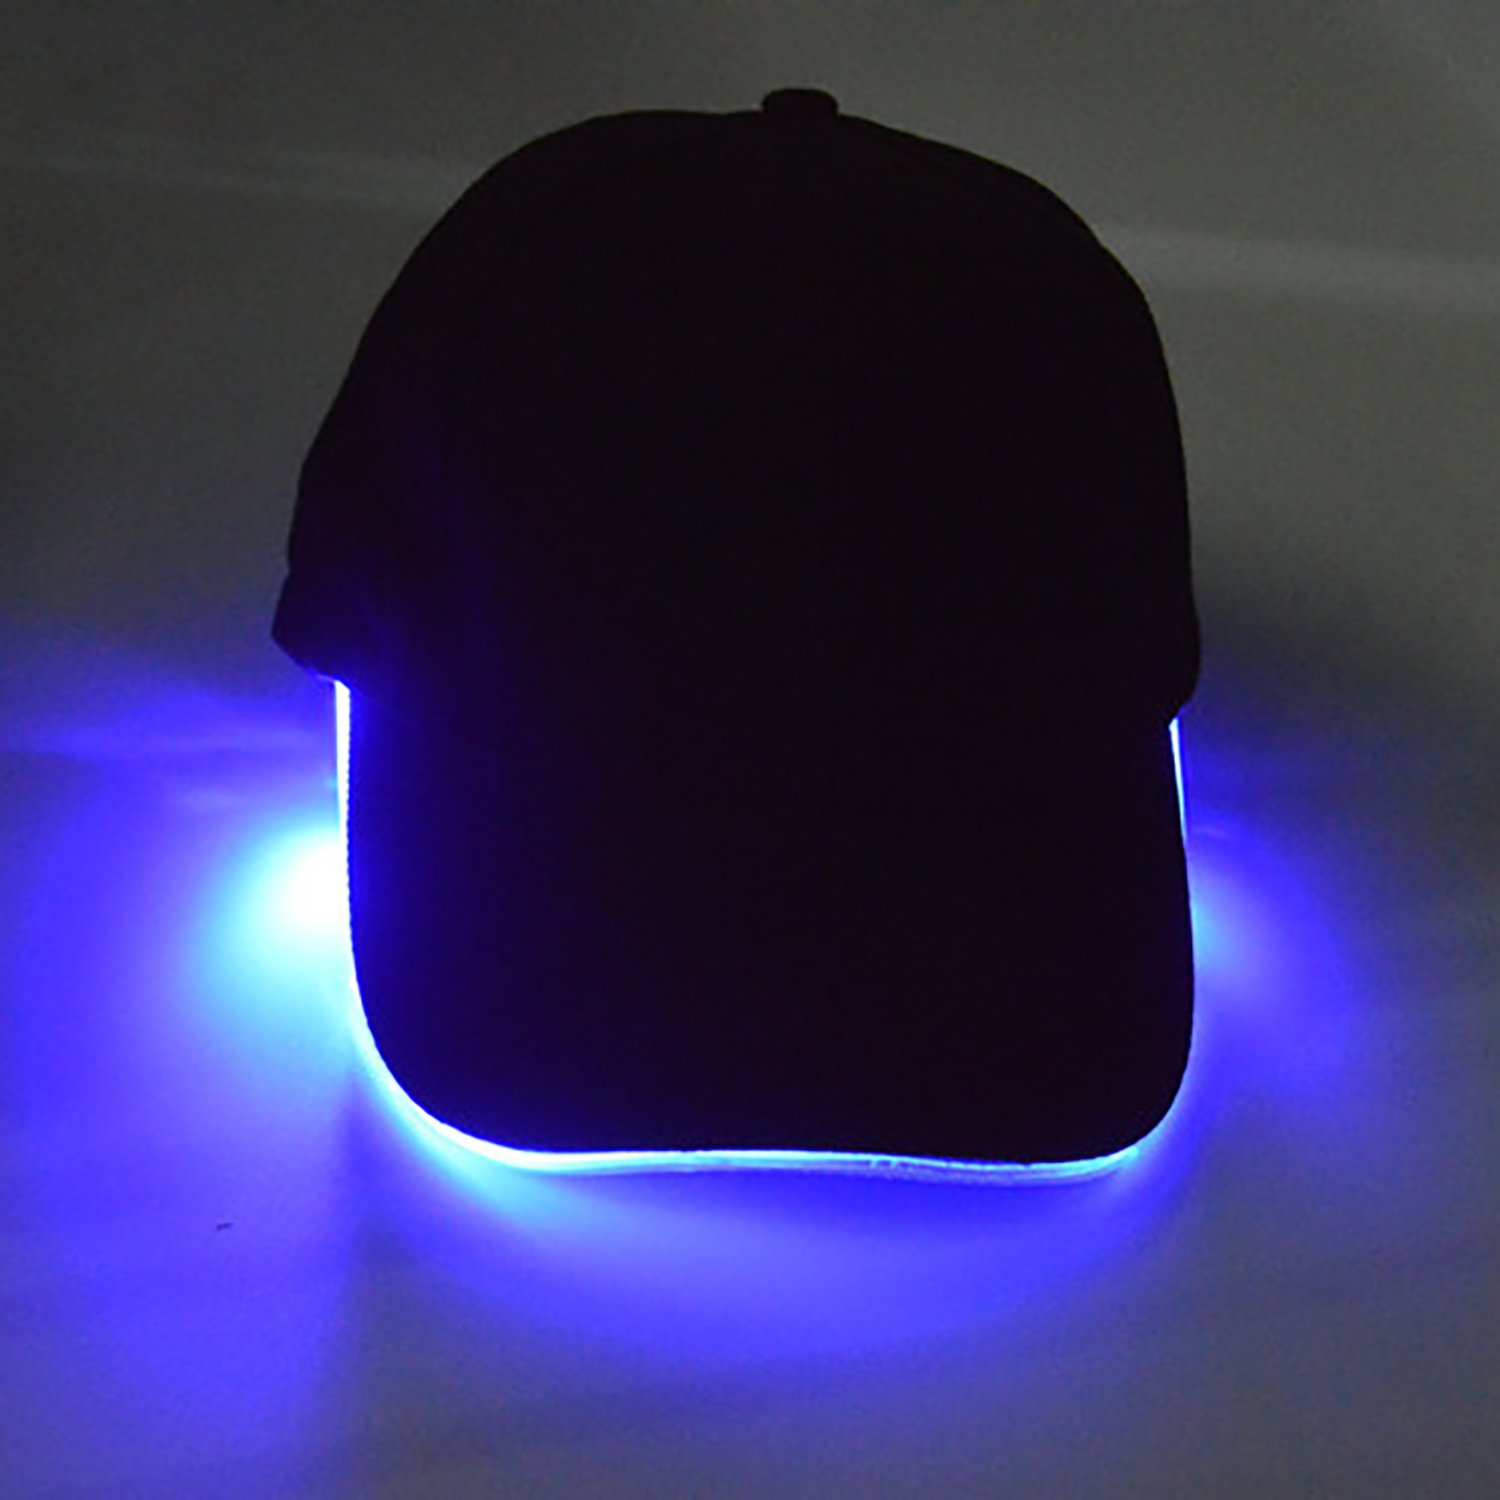 Unisex Led Hat Baseball Cap for Women Men Easily Adjustable Light Up Flashing Bright Sport Hats for Hip Hop Party, Hunting, Jogging, Camping, Angling, Christmas Cideros